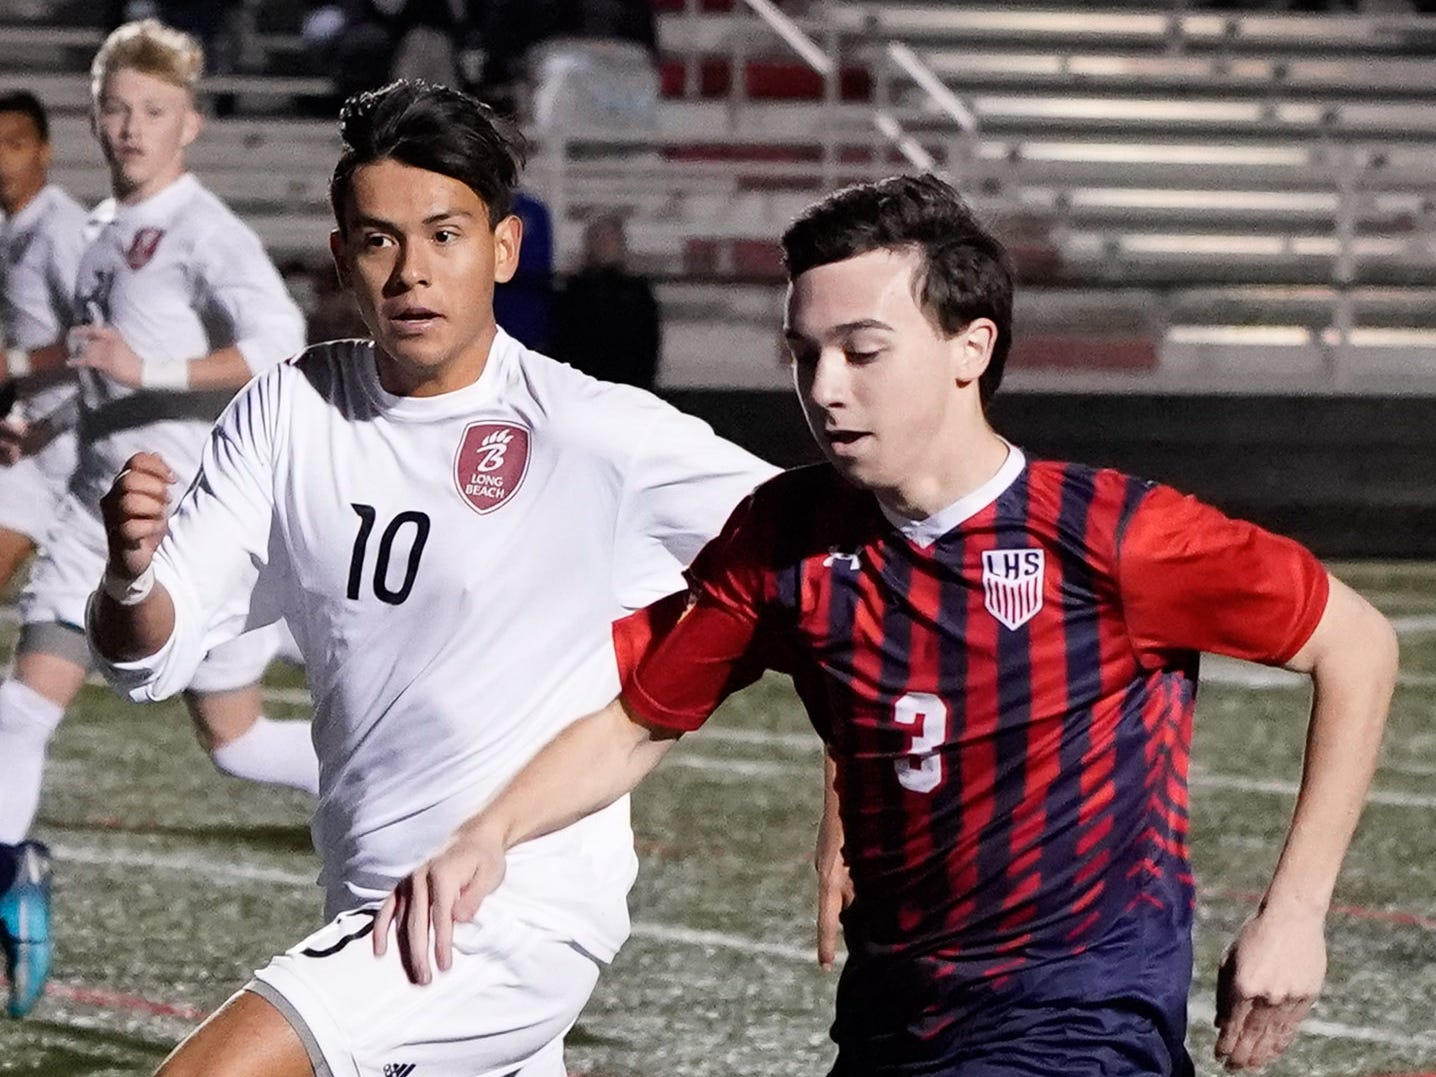 Lewisburg's Ty Greer (3) drives a ball upfield against Long Beach during the MHSAA 5A Boys Soccer Championships held at Brandon High School in Brandon, MS, Saturday February 9, 2019.(Bob Smith-For The Clarion Ledger)